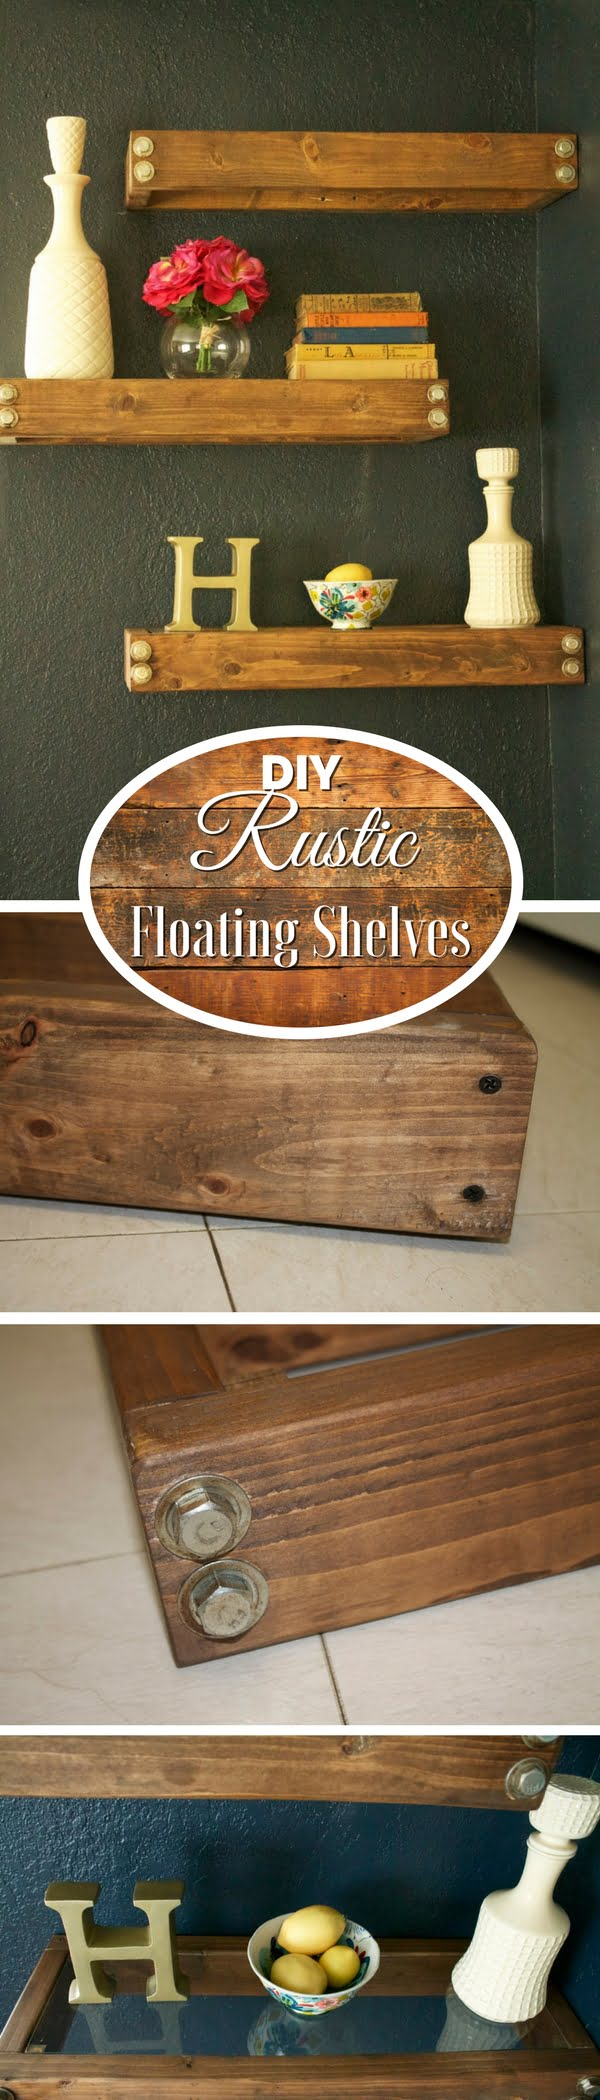 Check out how to make easy DIY rustic floating shelves